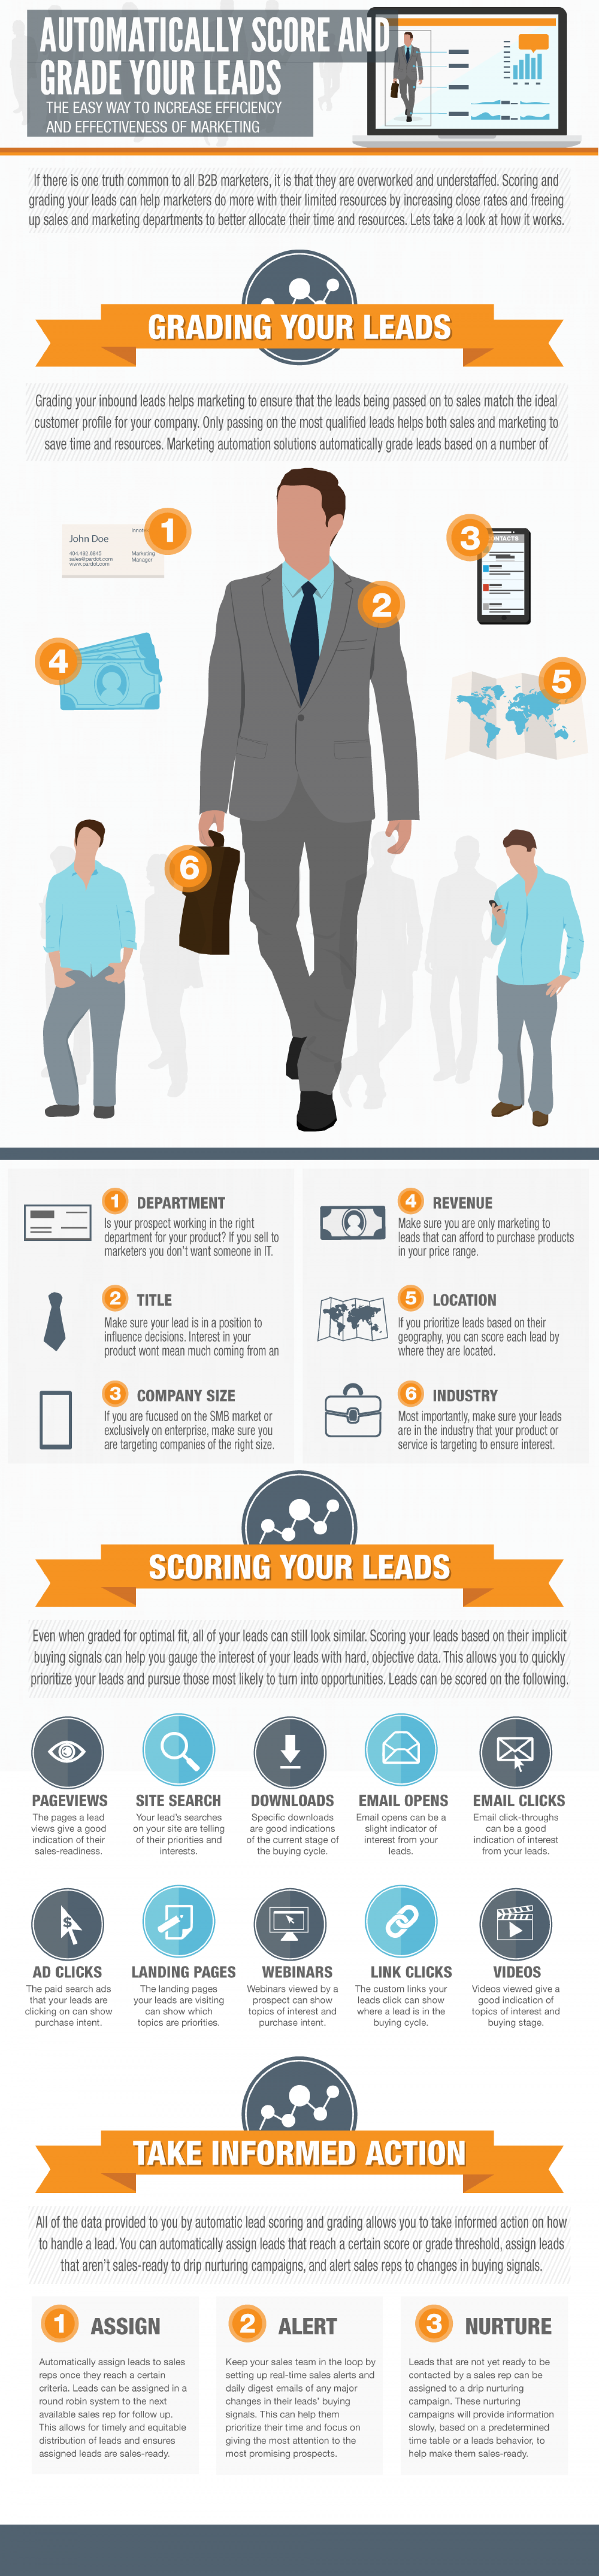 A Guide to Scoring and Grading Your Leads Infographic